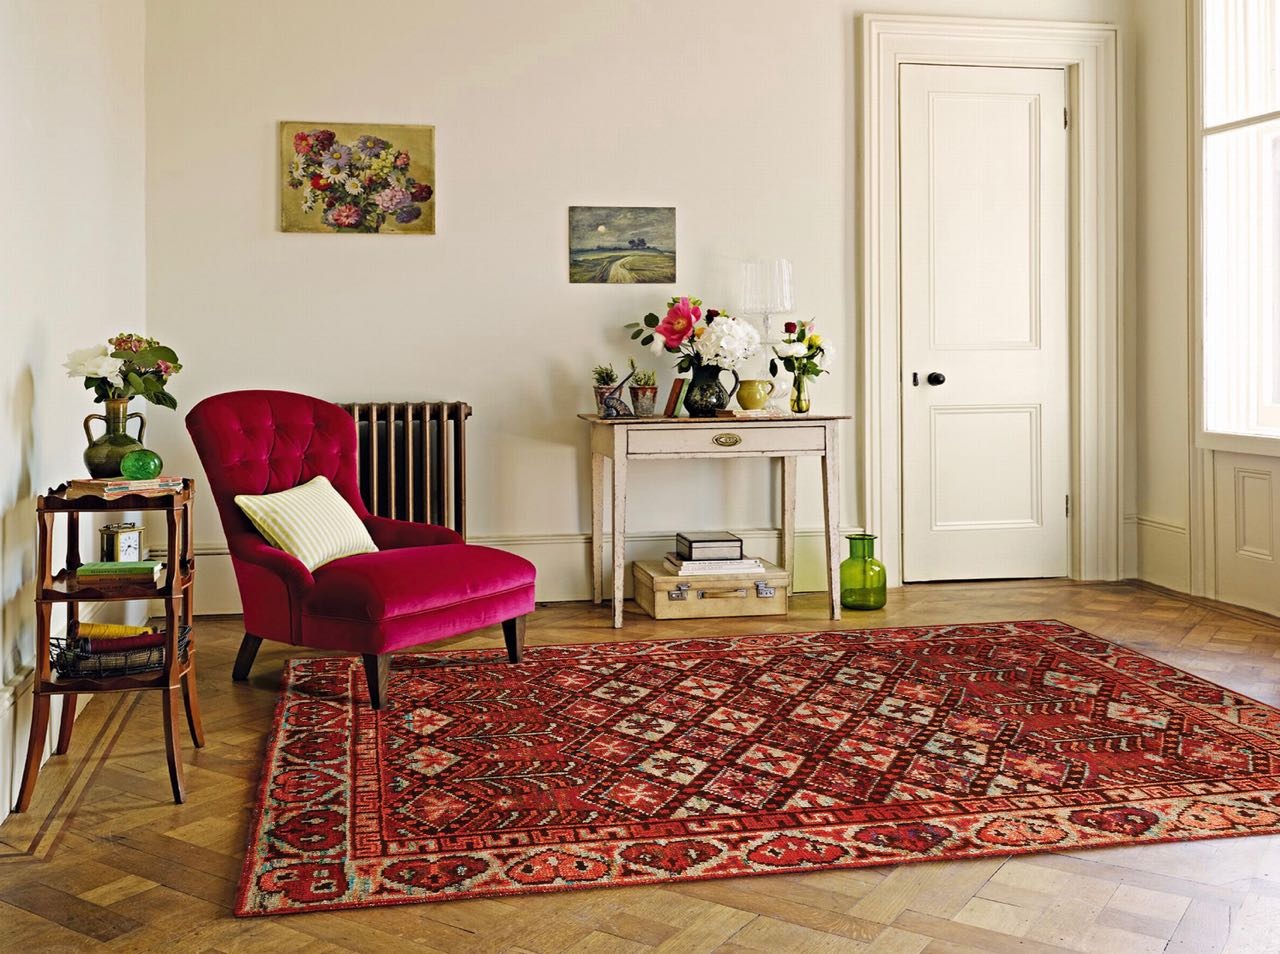 Transform Any Room in Your House with an Area Rug